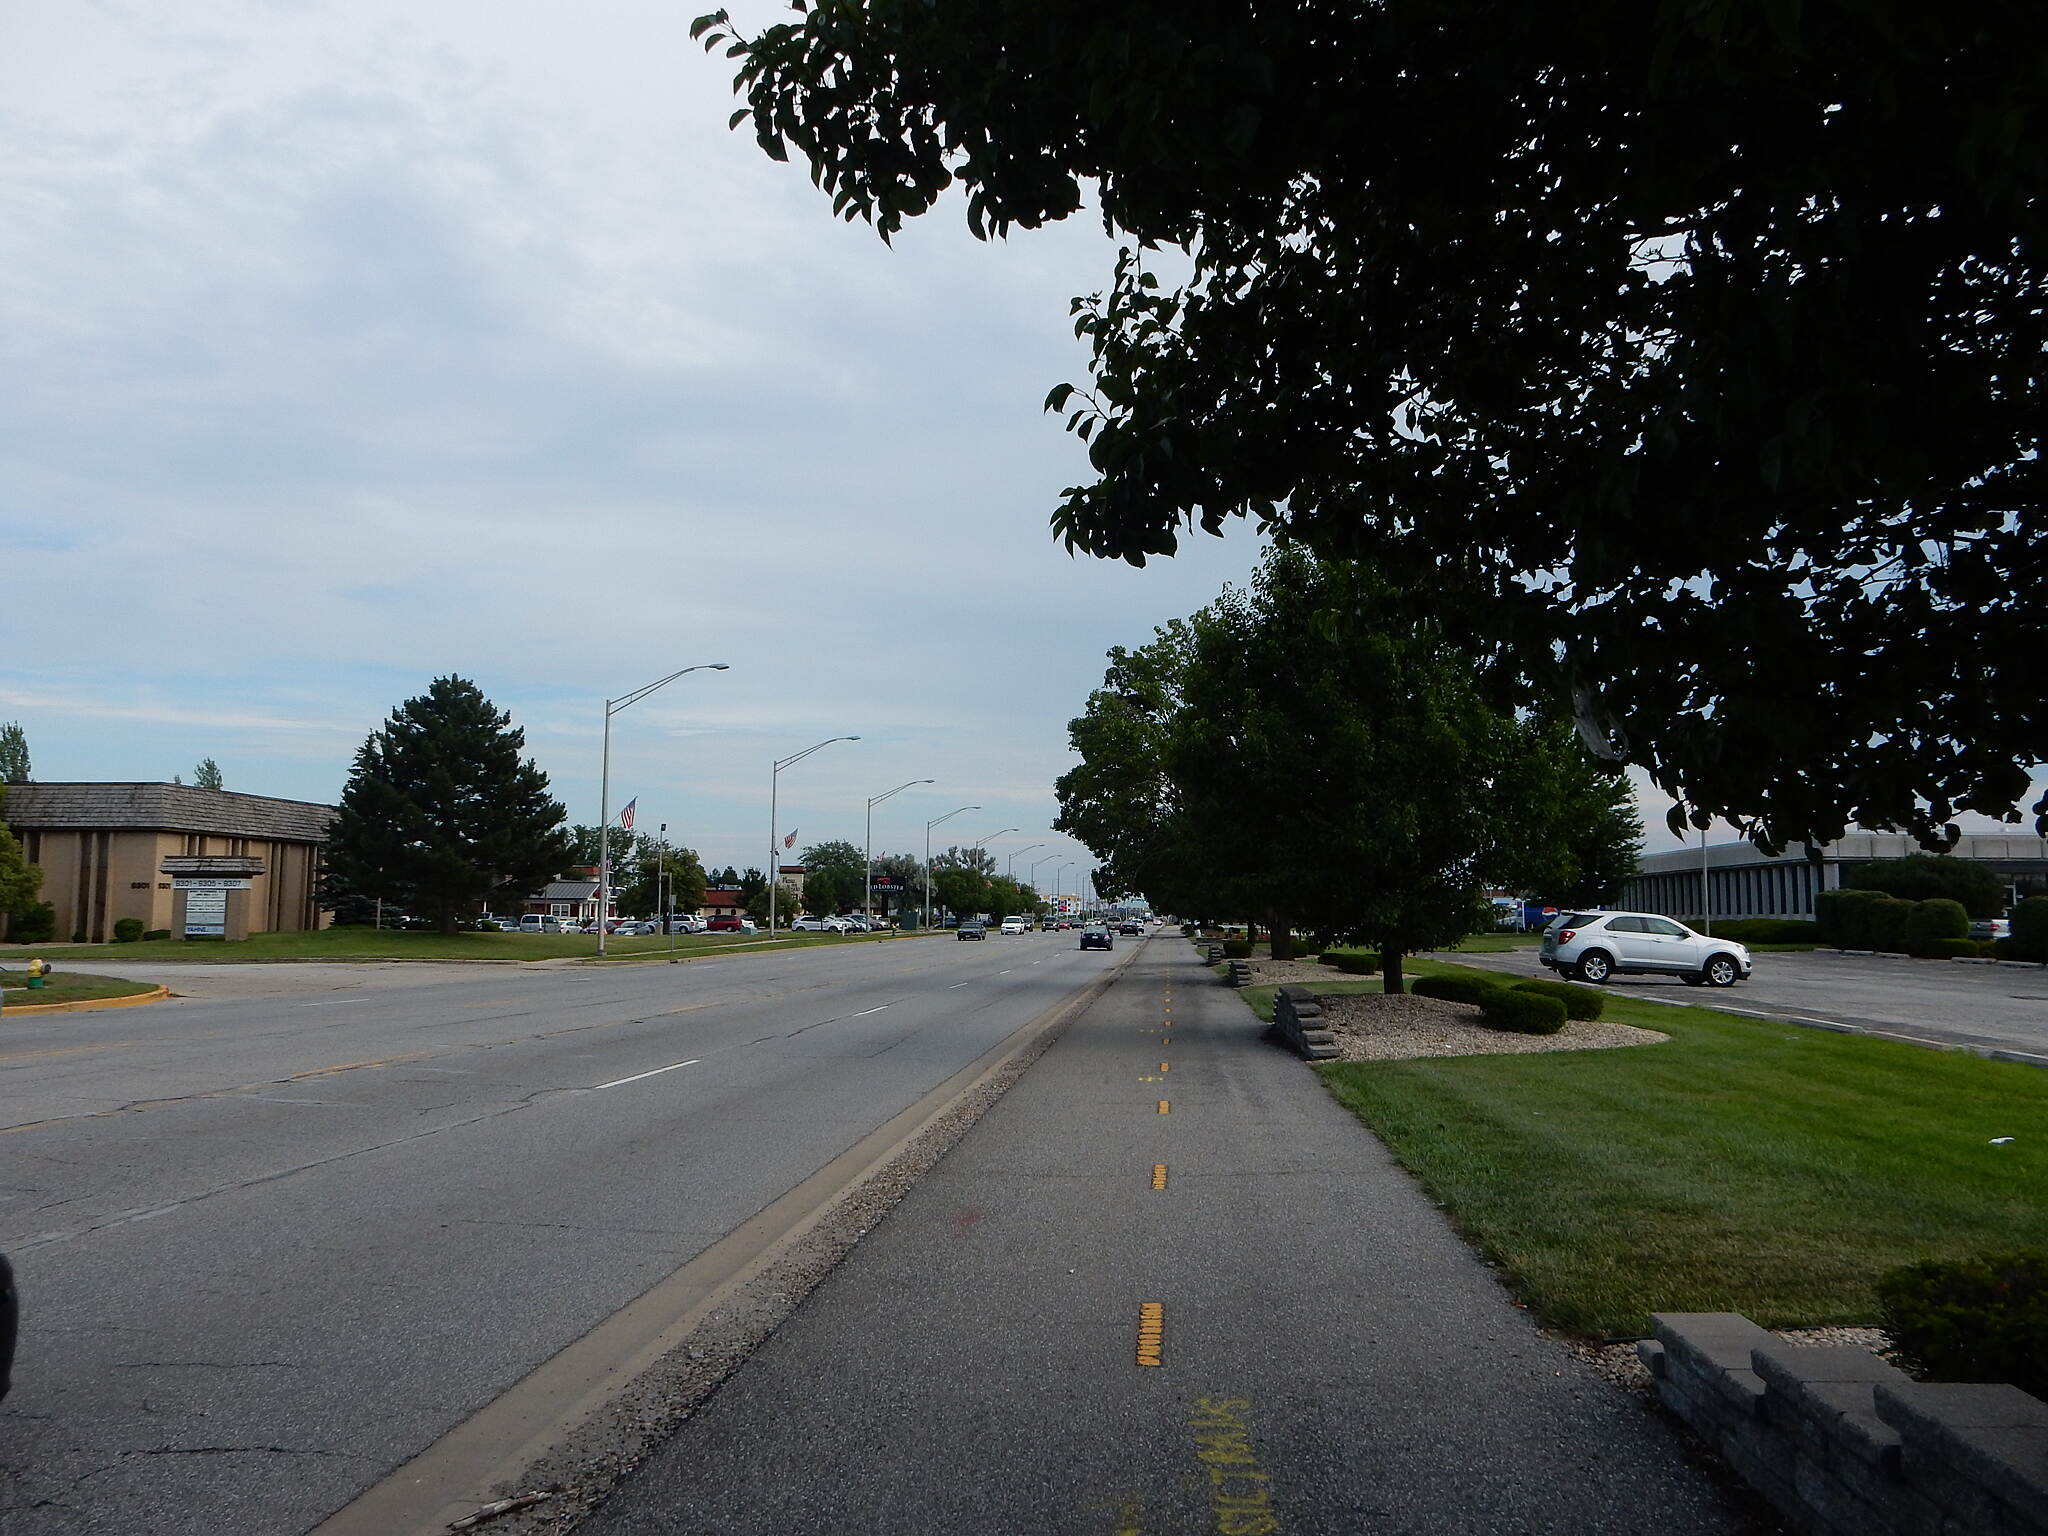 Pennsy Greenway Along Calumet Ave. From Centennial Park, the trail runs north along Calumet Ave. At the Walgreens at the corner of Calumet and Fisher, the trail continues west along Fisher. Taken 7-5-17.